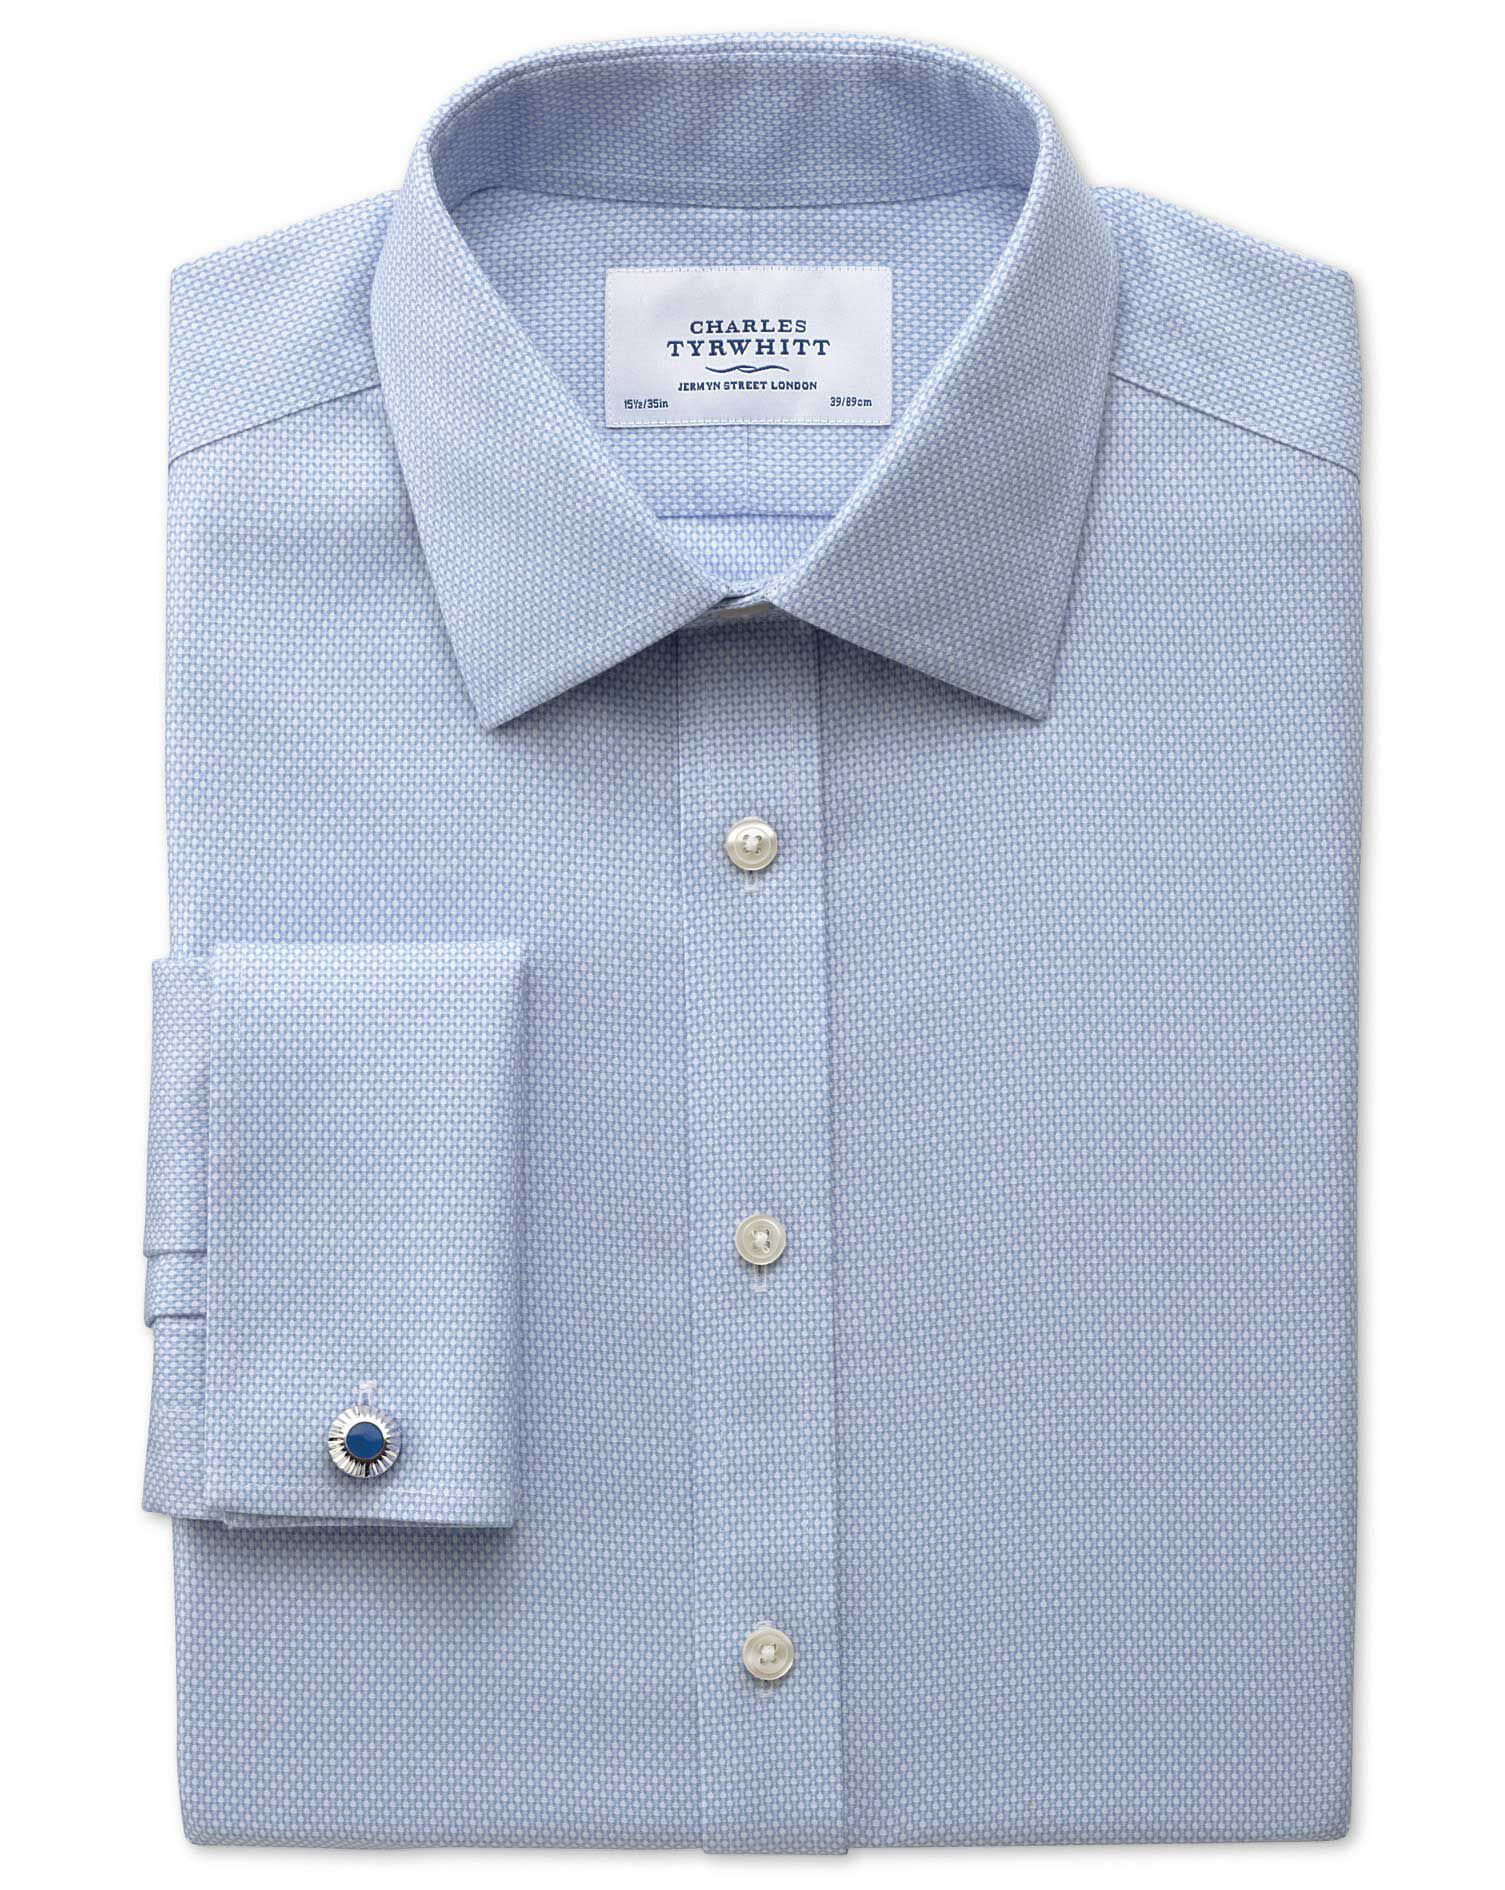 Classic Fit Non-Iron Honeycomb Sky Blue Cotton Formal Shirt Double Cuff Size 15/35 by Charles Tyrwhi